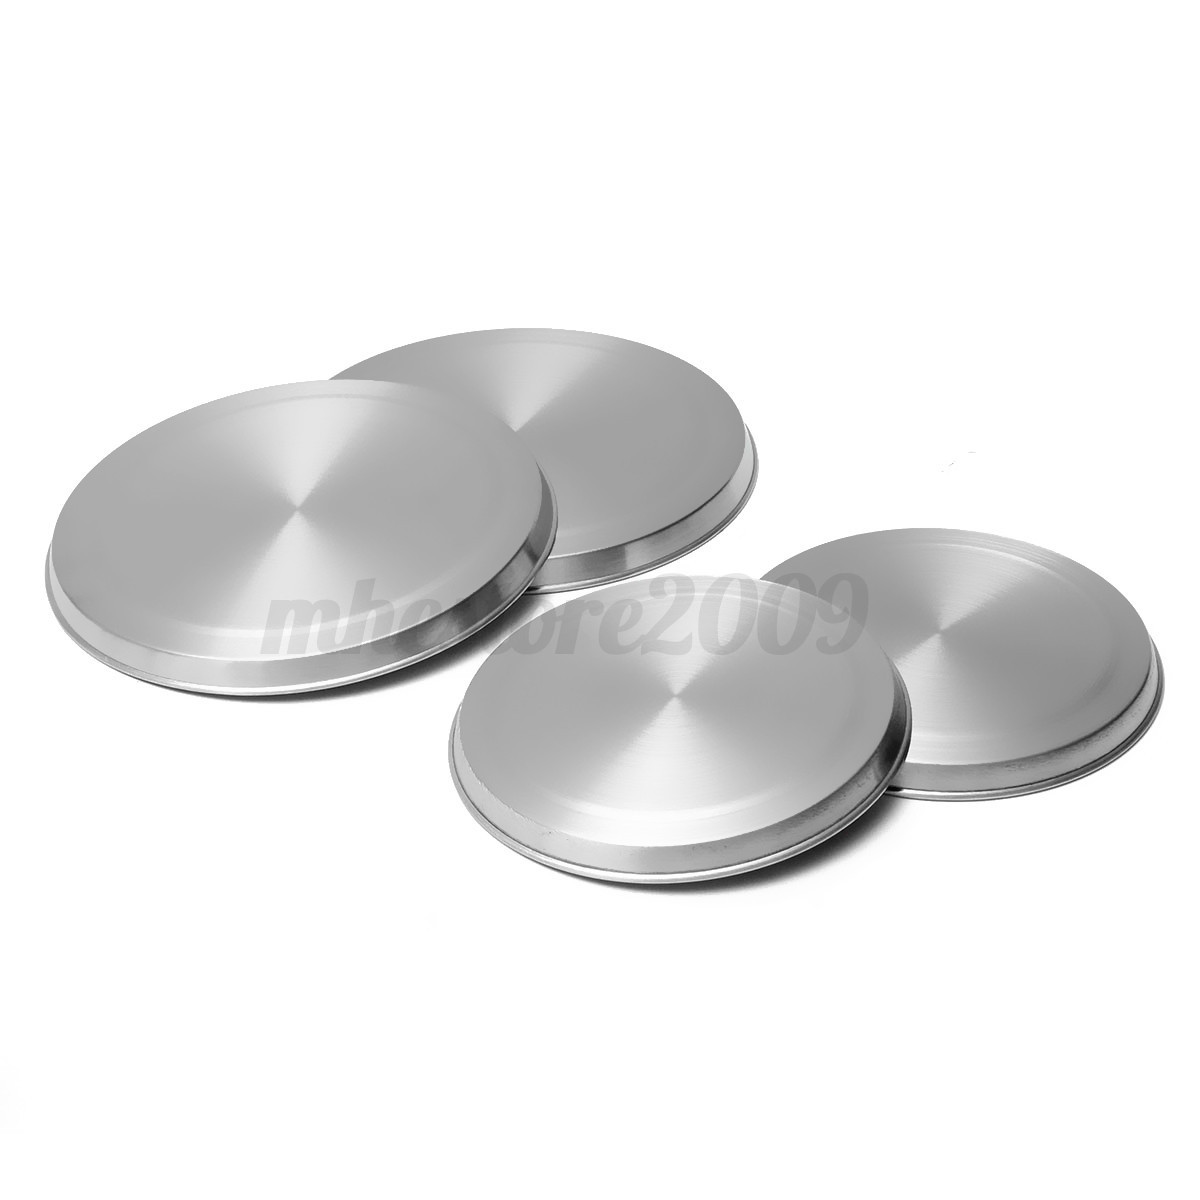 4pcs Set Stainless Steel Kitchen Stove Top Covers Burner